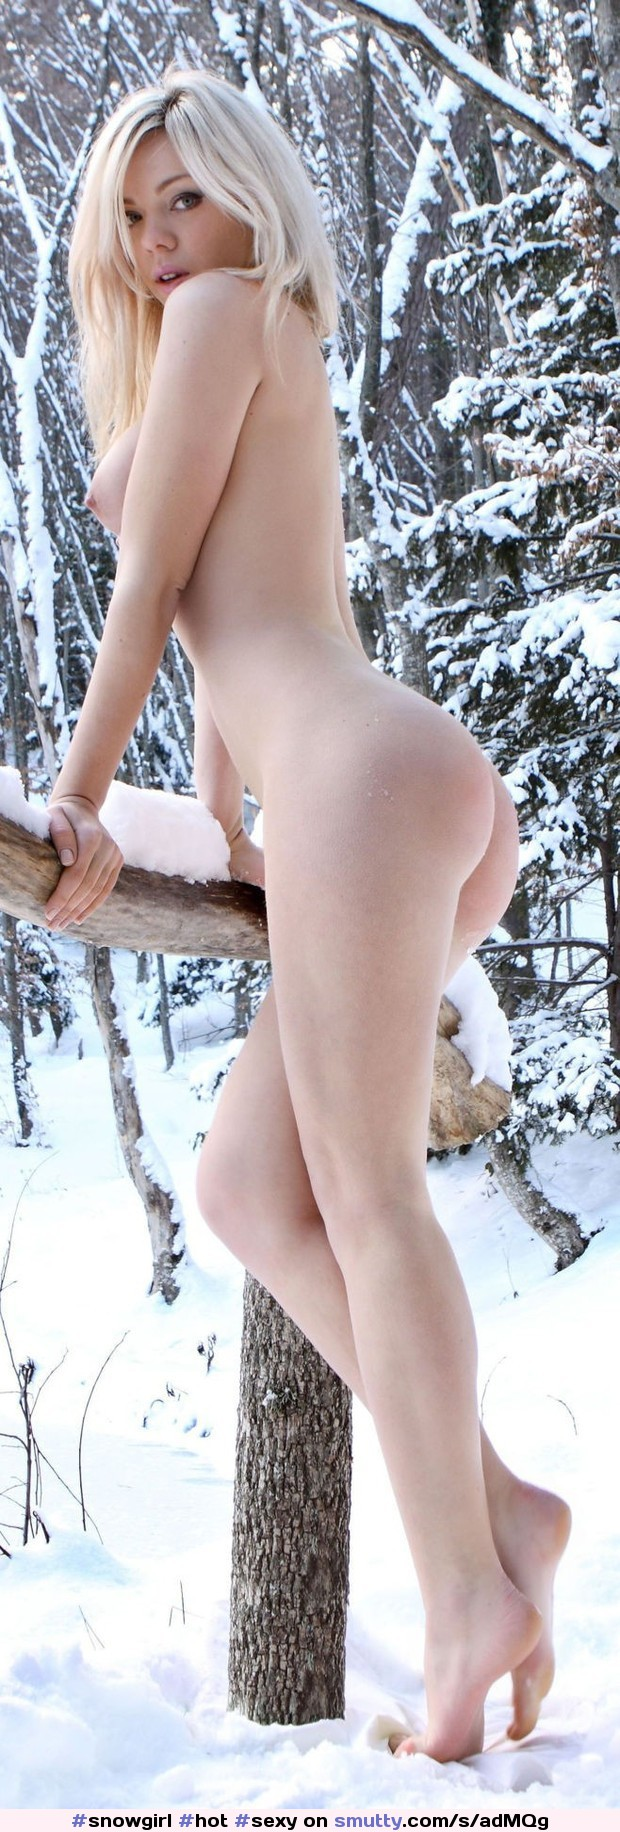 #hot #sexy #Naked #blonde #sideboob #nilles #ass #legs #snow